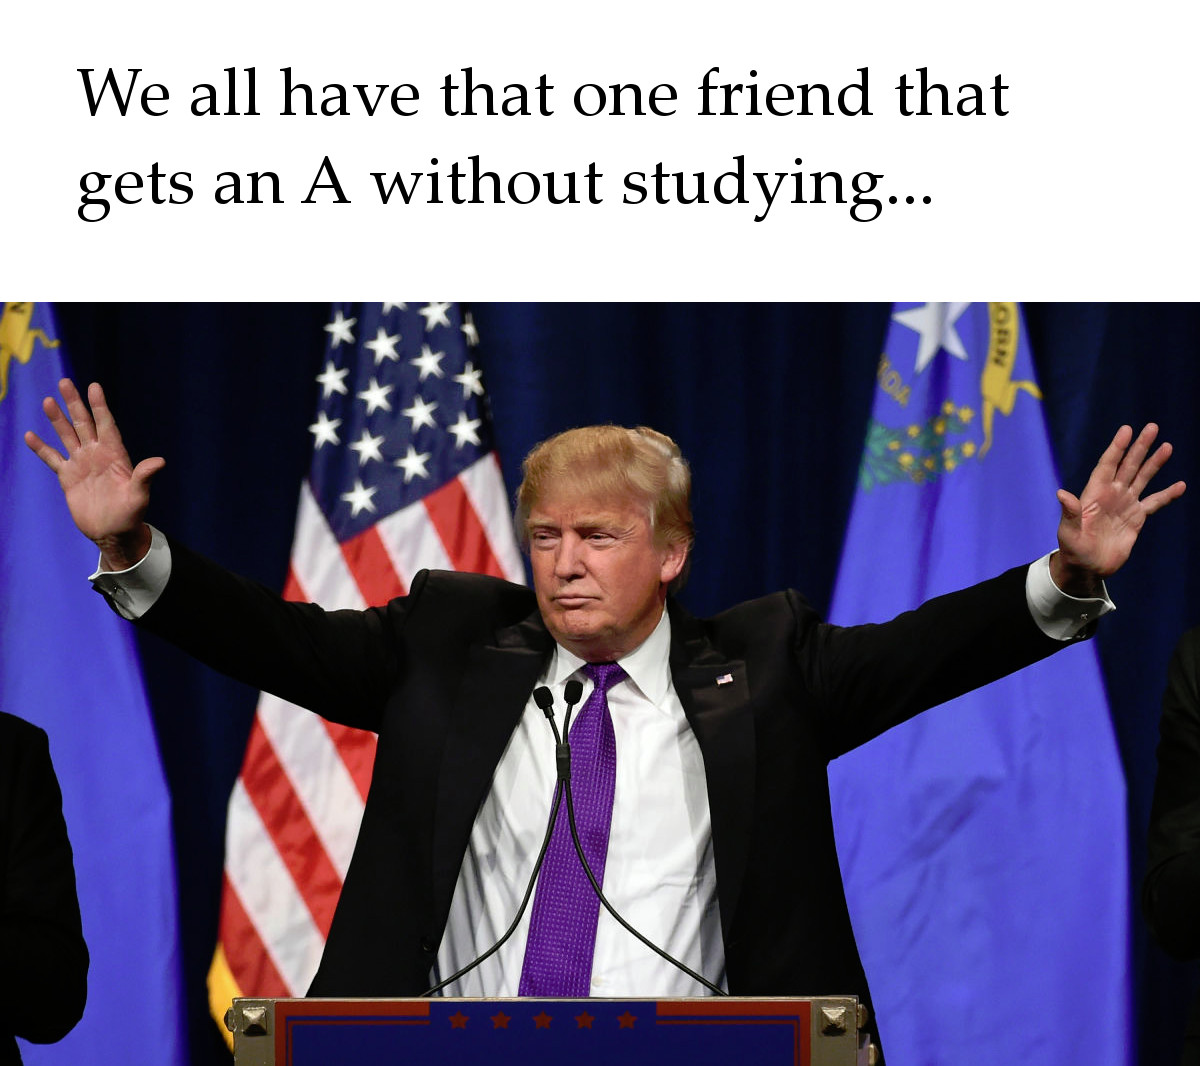 Donald Trump Can Be President Without Studying